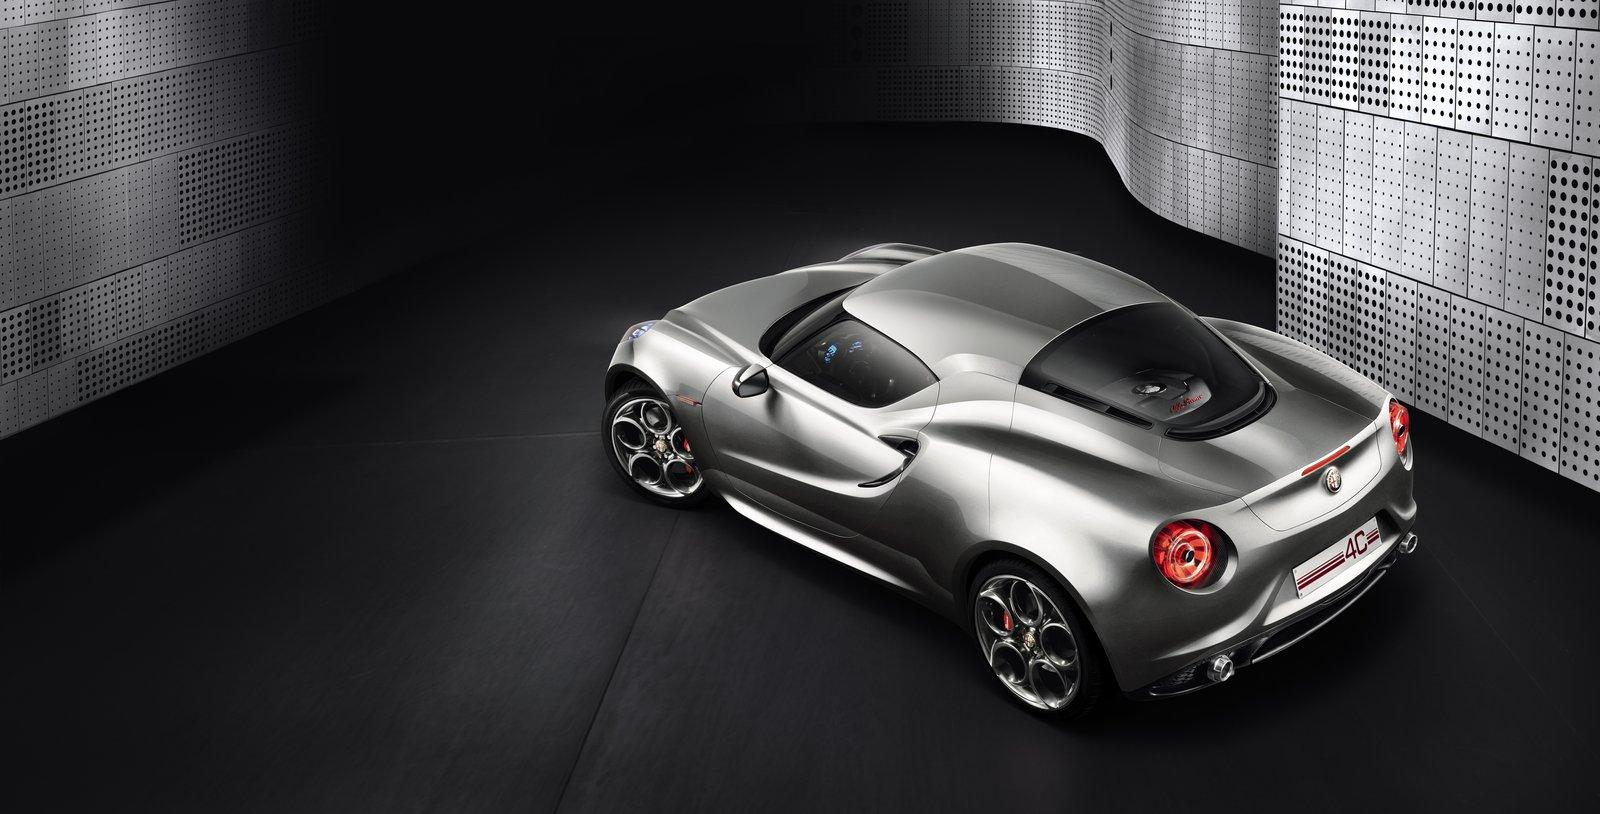 2011 Alfa Romeo 4C Concept 2011 ALFA ROMEO SPORTS THE METALLIC LOOK